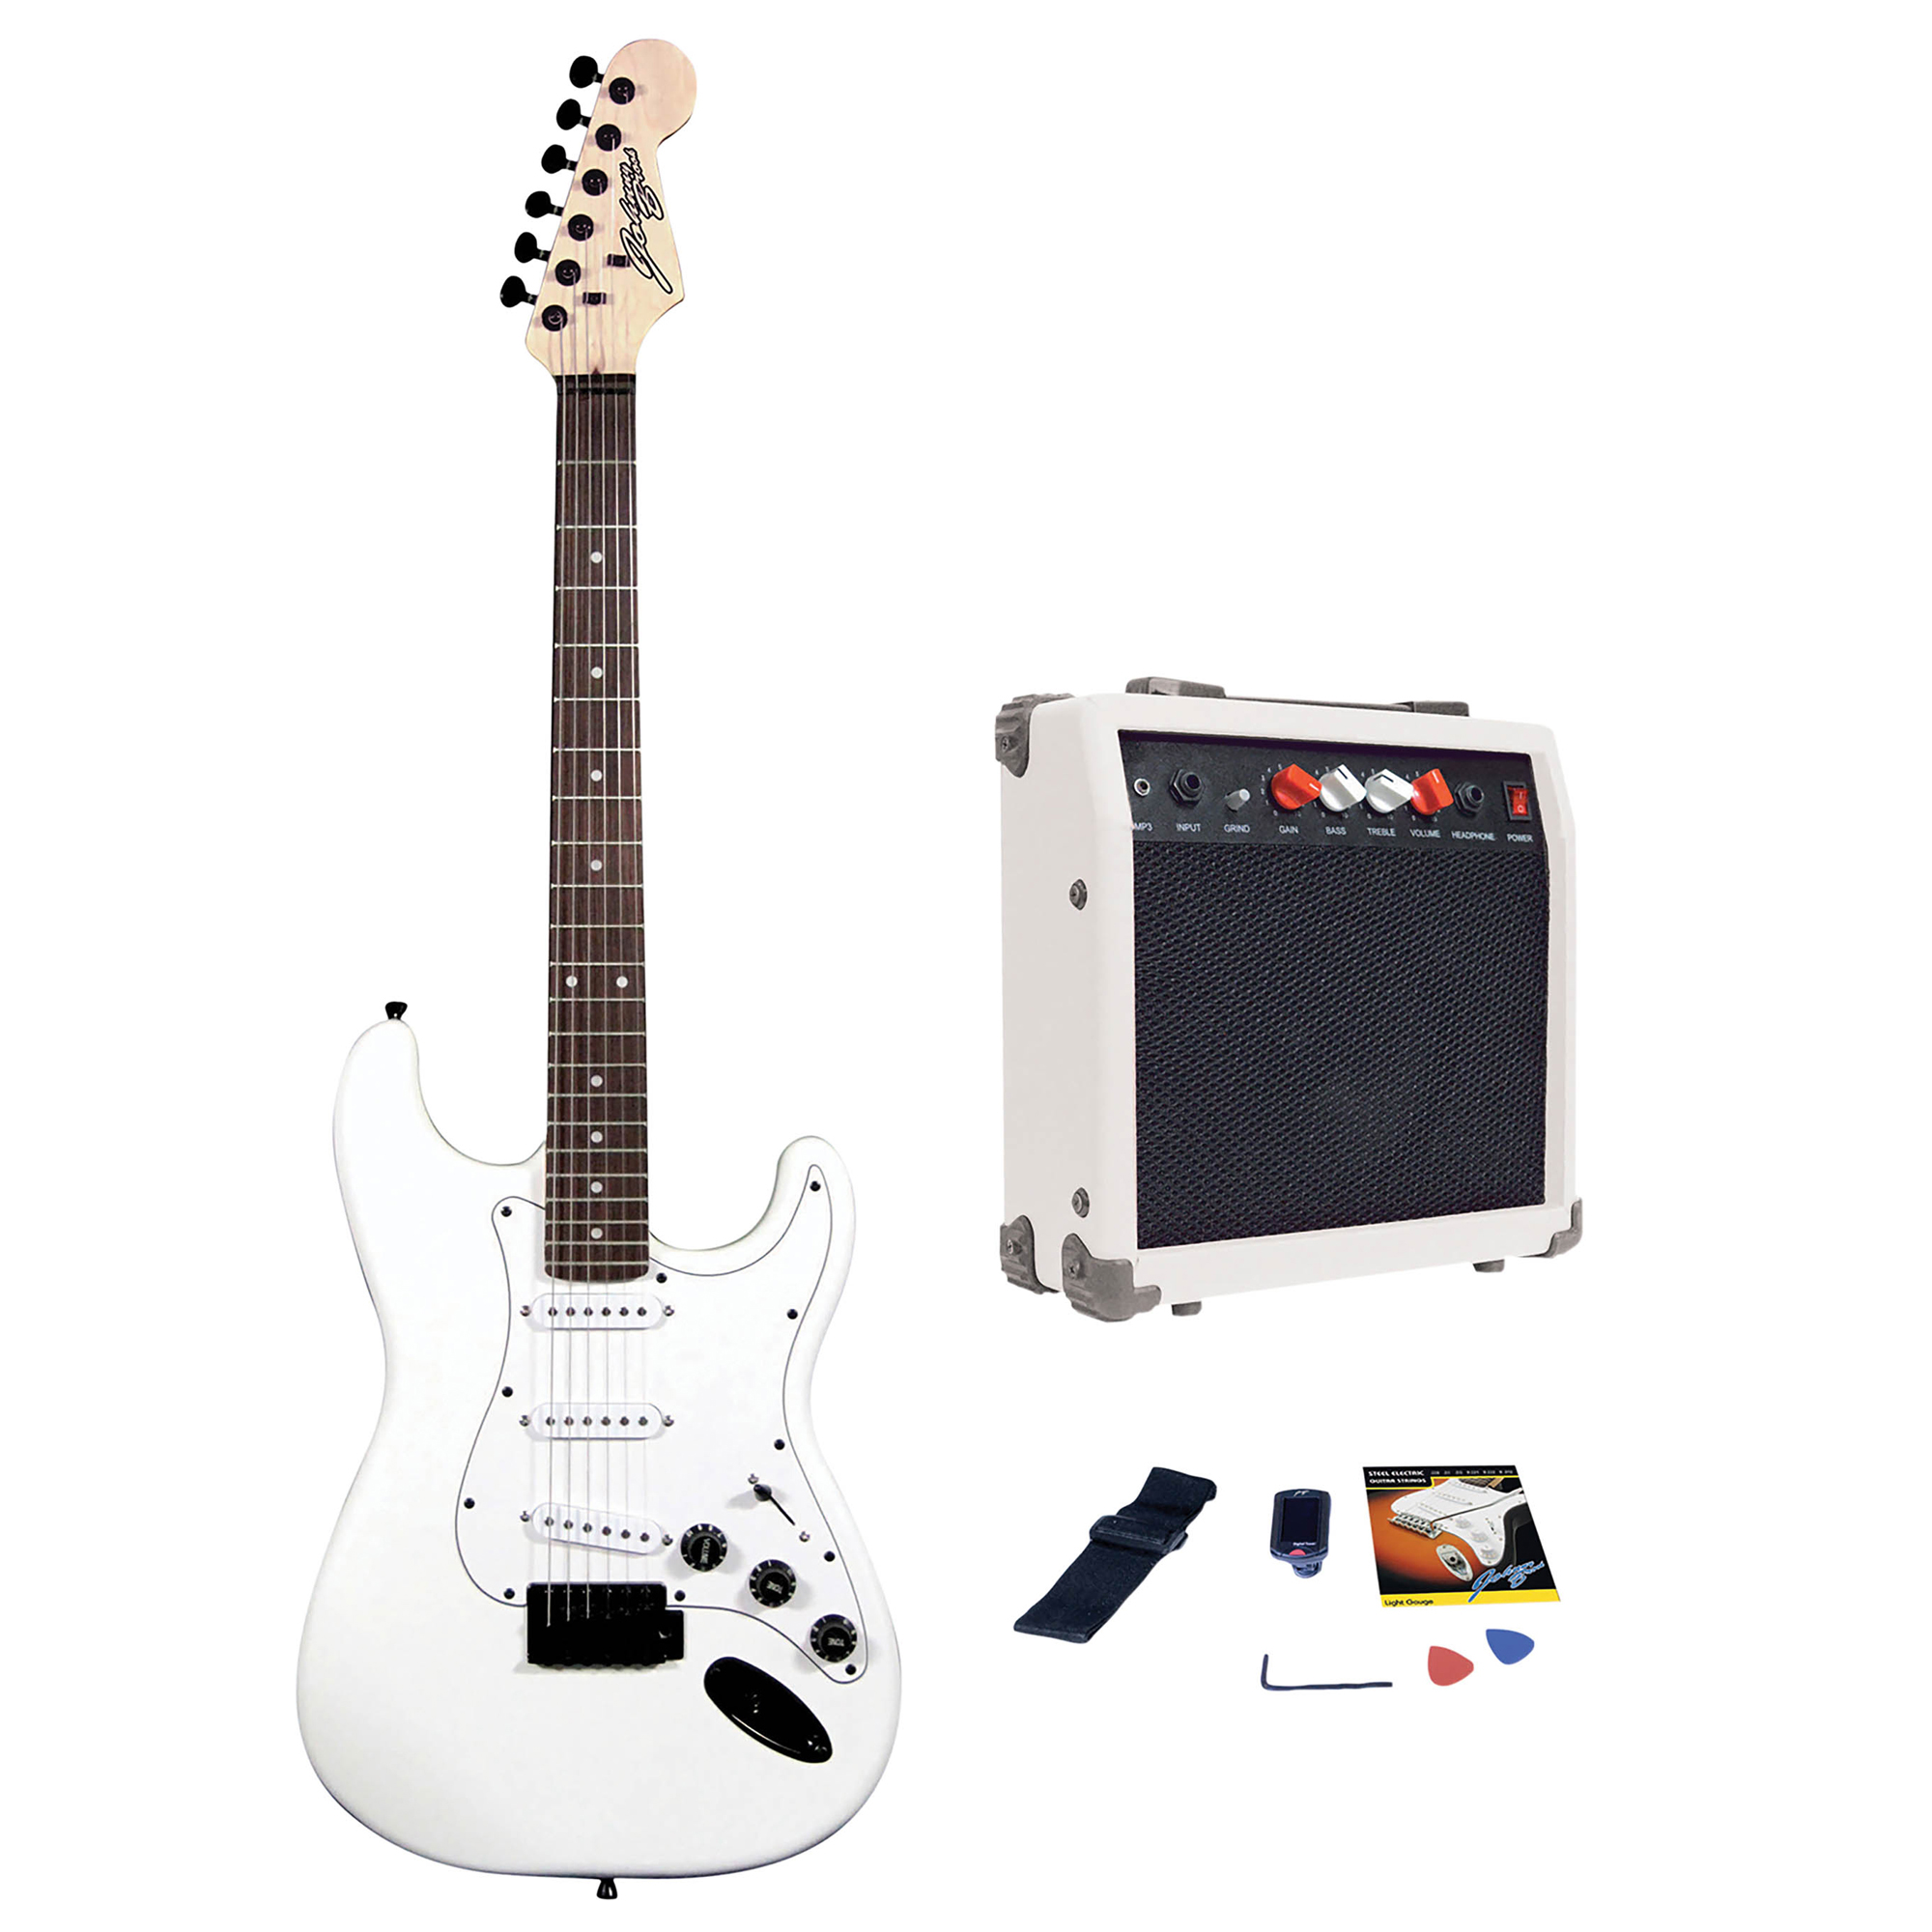 johnny brook jb402 standard guitar kit with coded combo amplifier white 20w. Black Bedroom Furniture Sets. Home Design Ideas